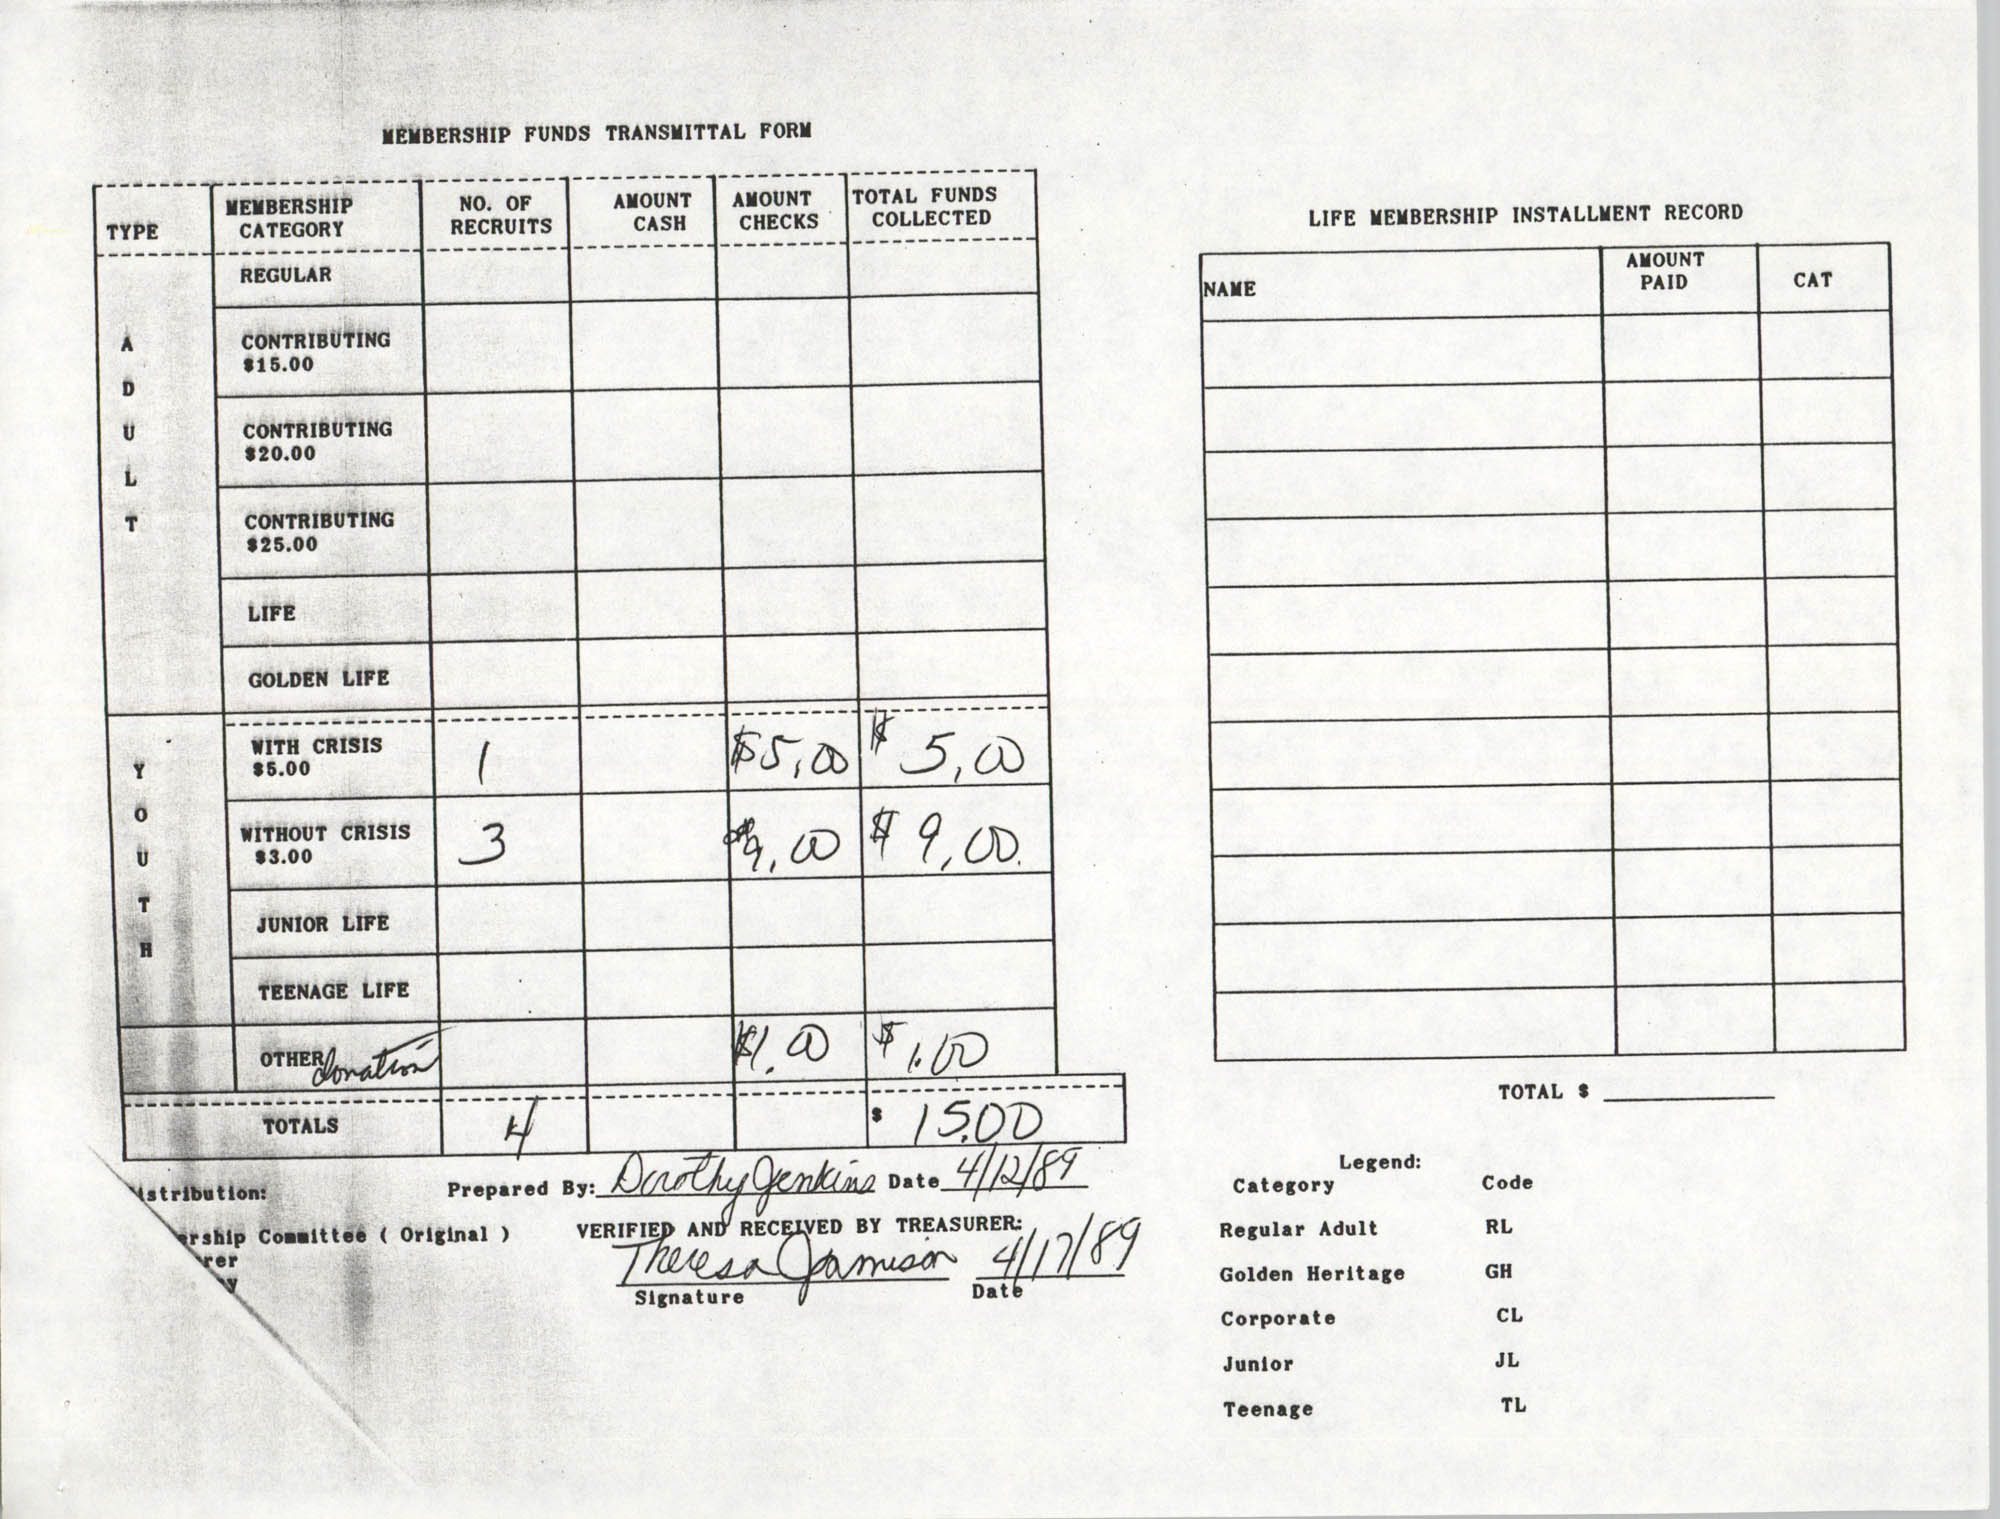 Charleston Branch of the NAACP Funds Transmittal Forms, April 1989, Page 2